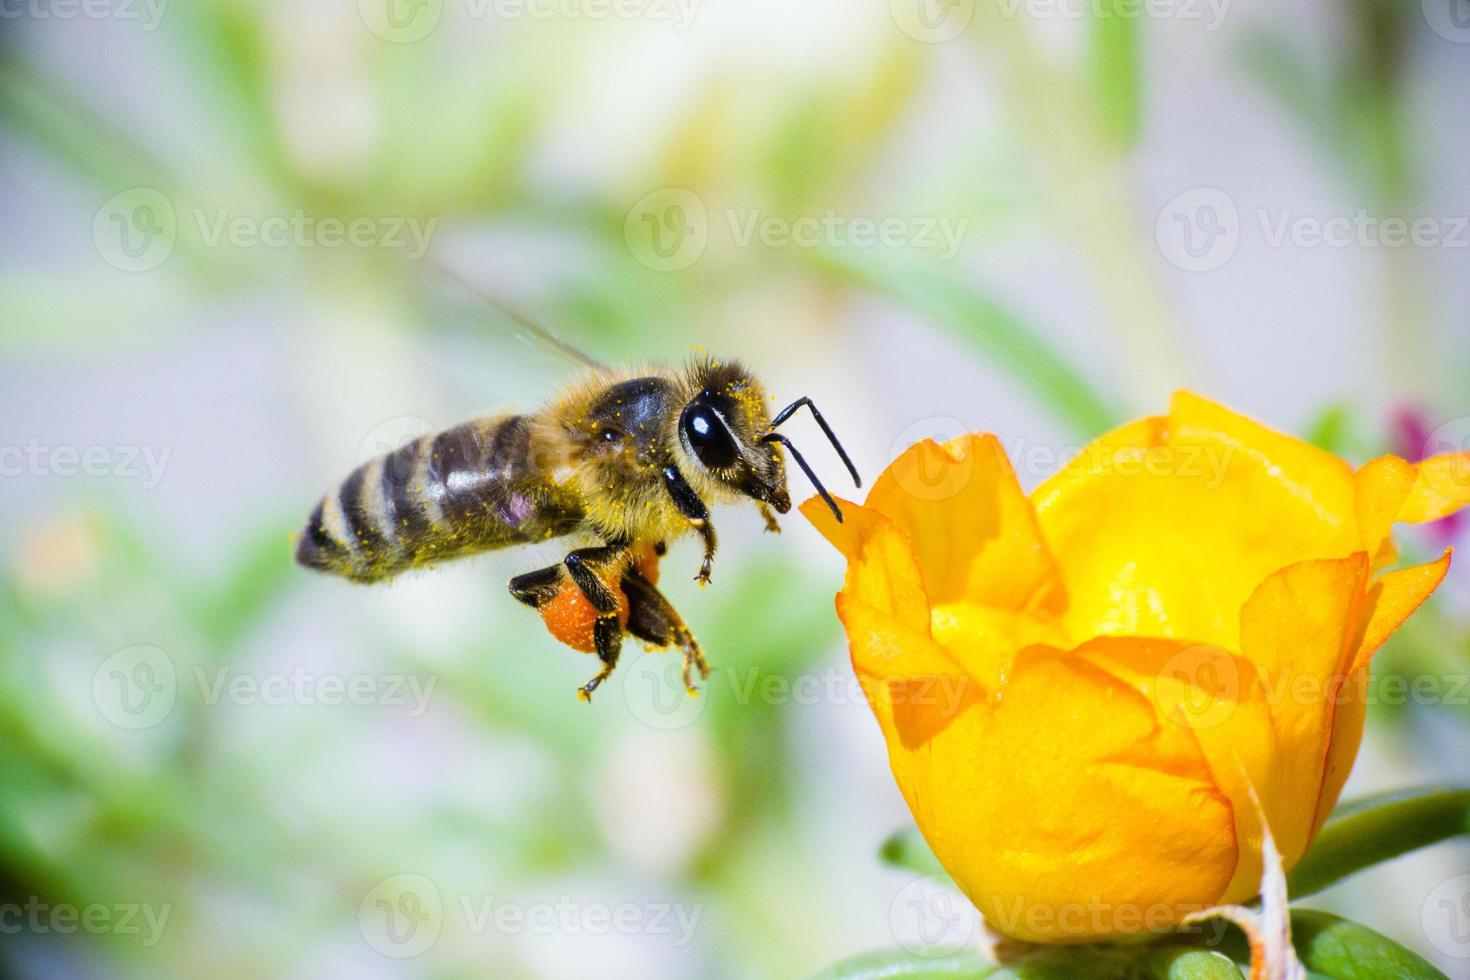 Honey bee in flight photo